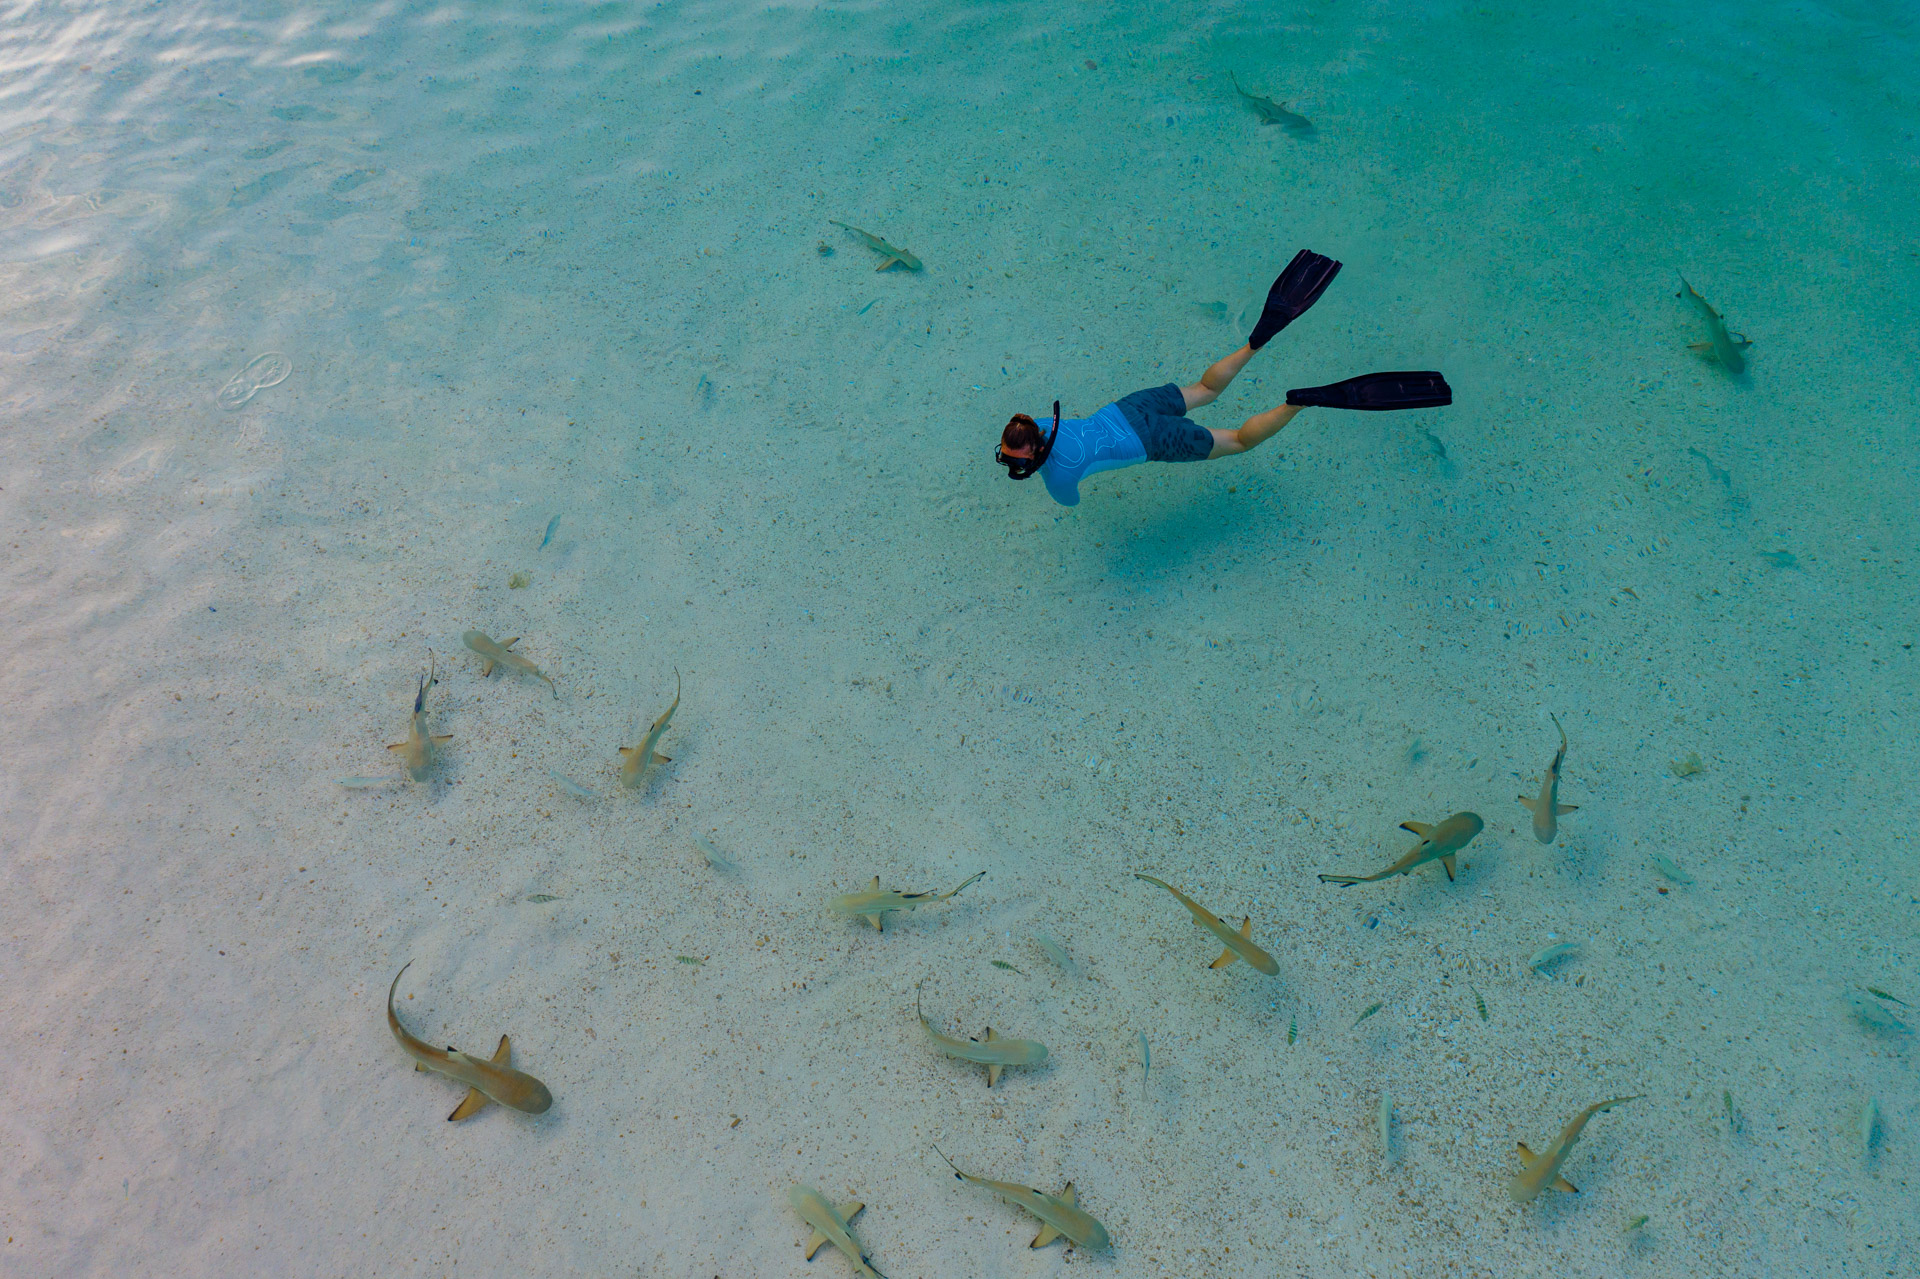 snorkeler surrounded by baby sharks